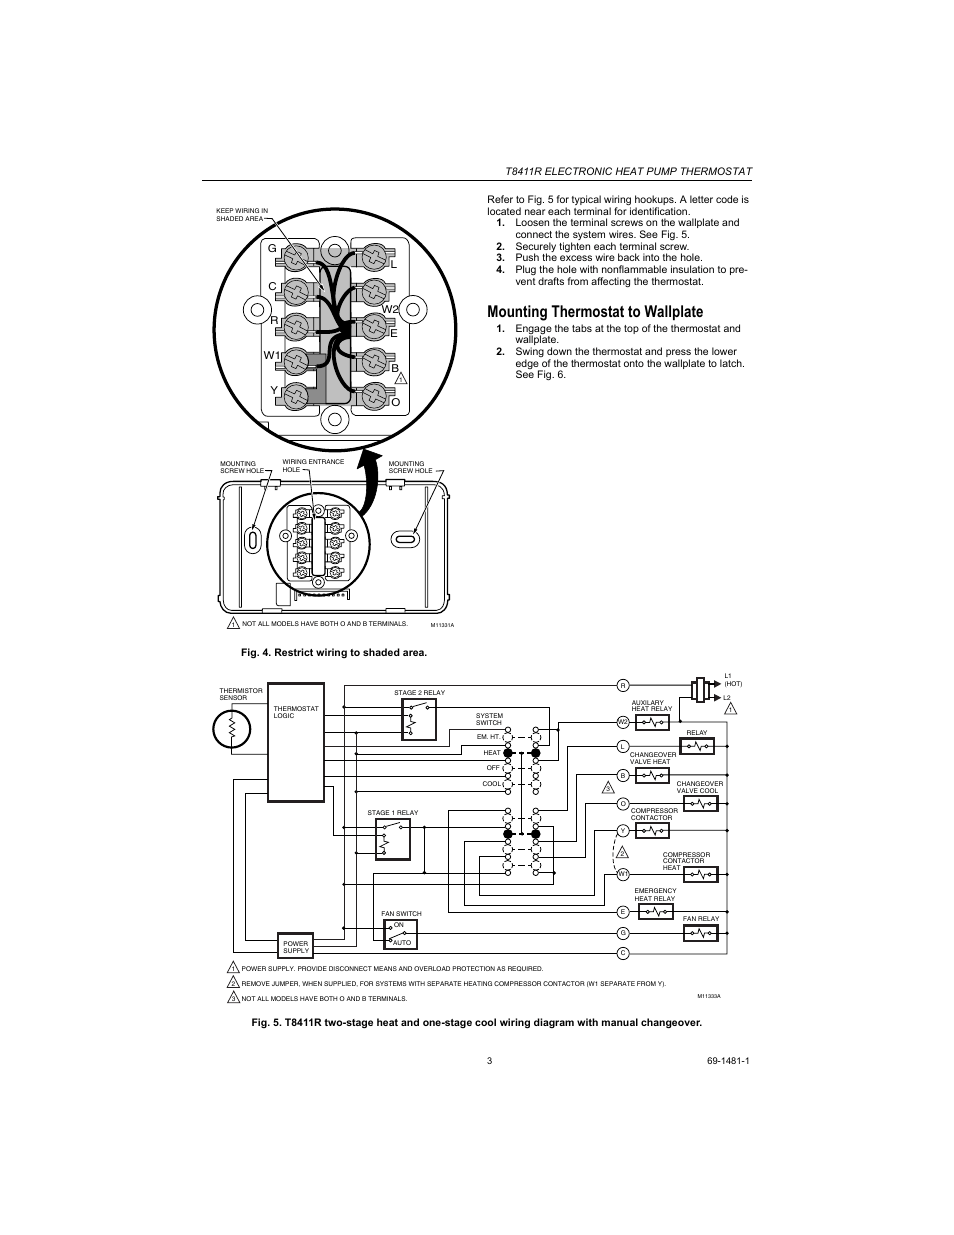 honeywell heat pump thermostat t8411r page3?resize\\\\\\\=665%2C861 trane heat pump wiring diagram & carrier rooftop units wiring honeywell t8411r thermostat wiring diagram at bayanpartner.co